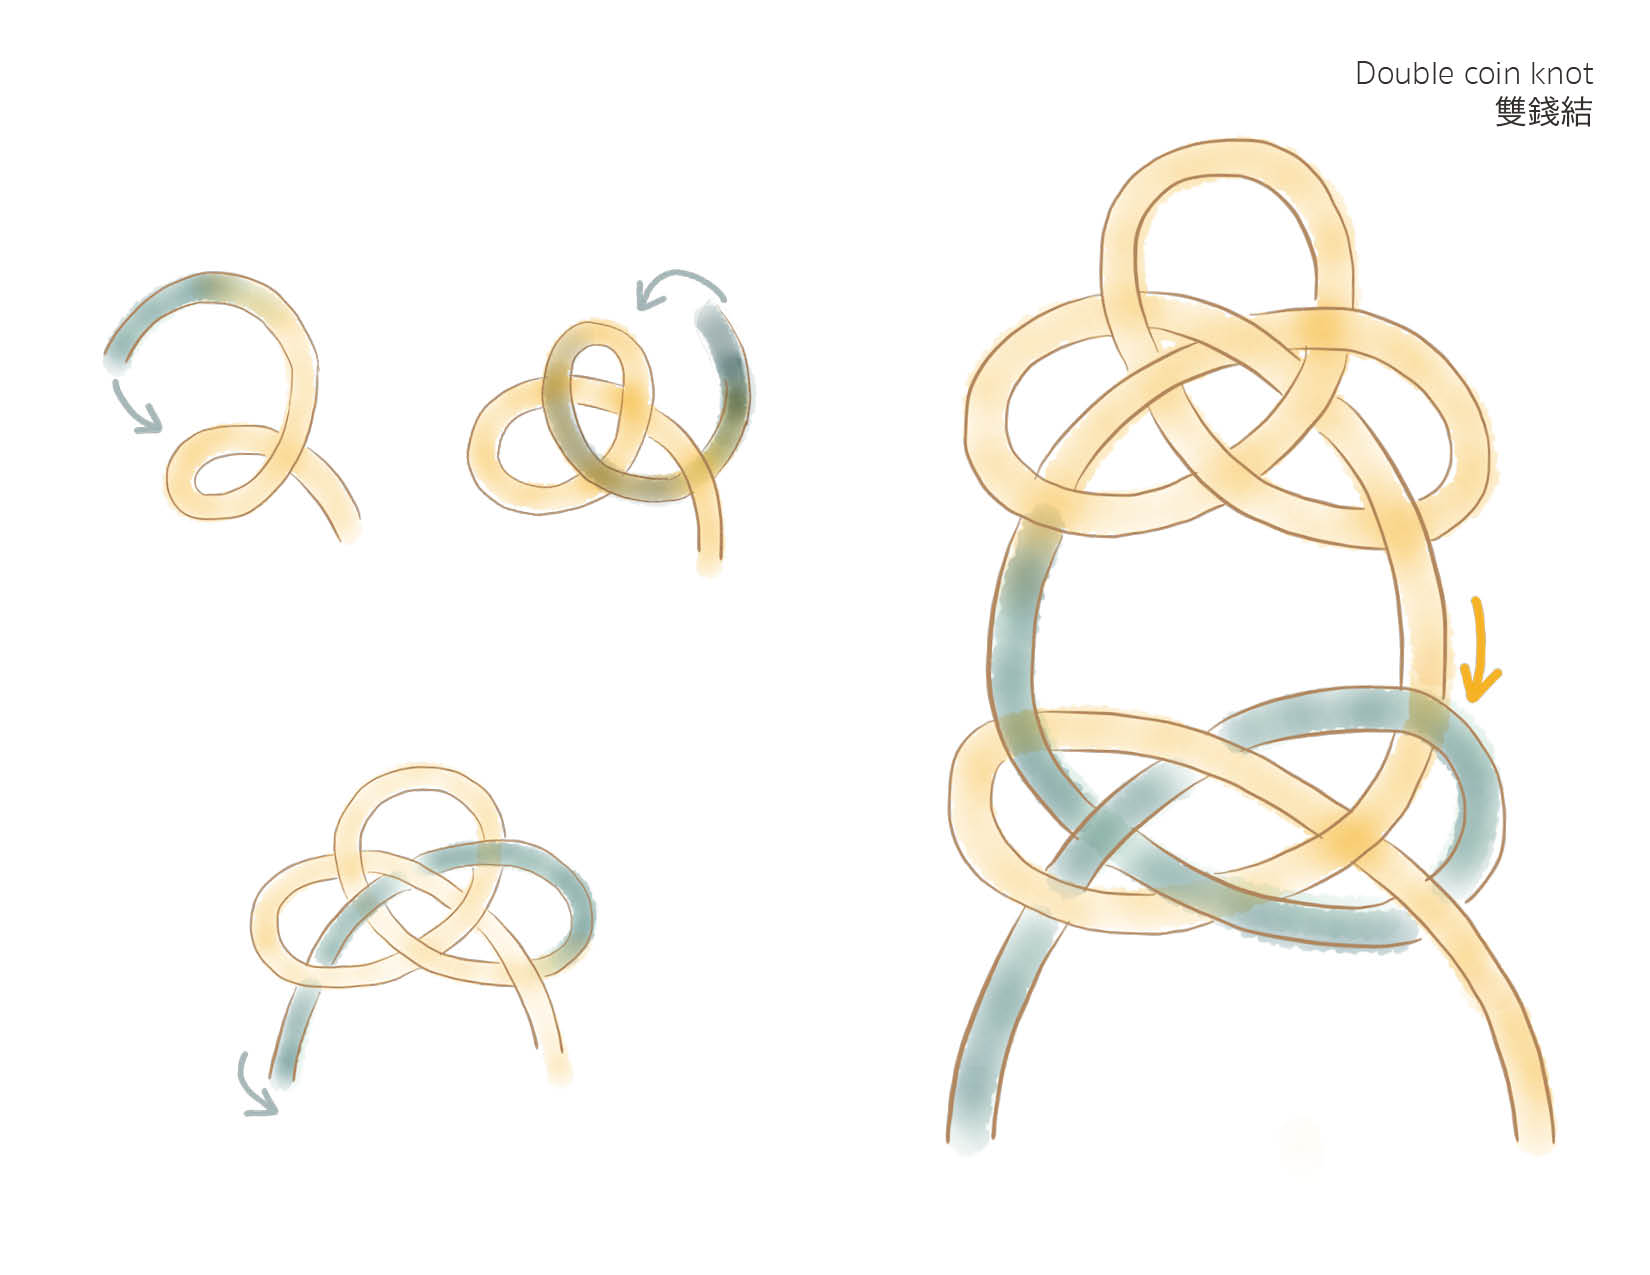 cable knots booklet (2017) Annie Onyi Cheung